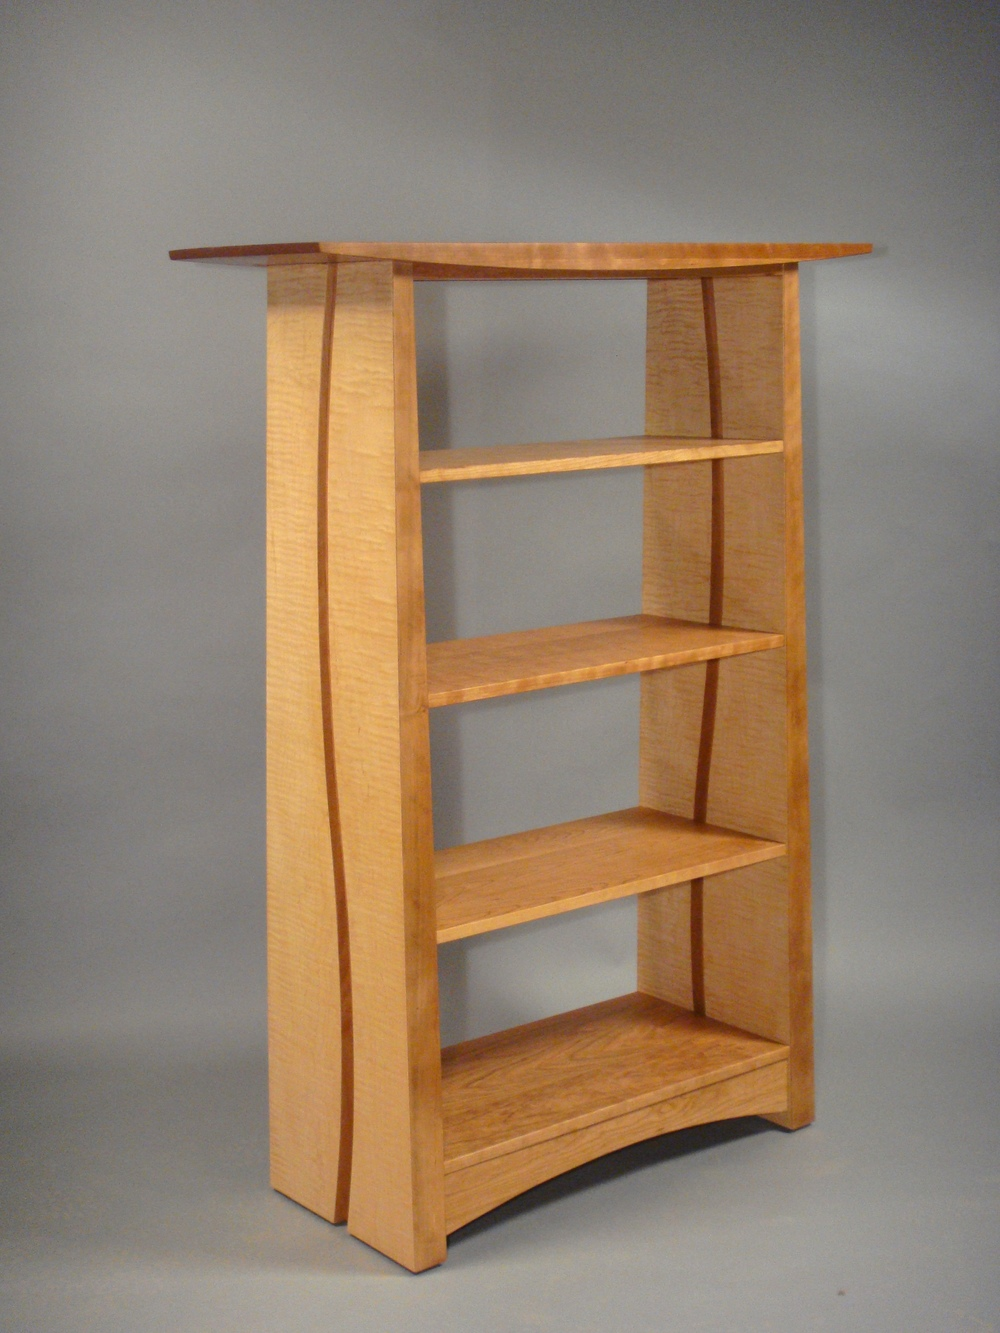 Meander Bookcase #2